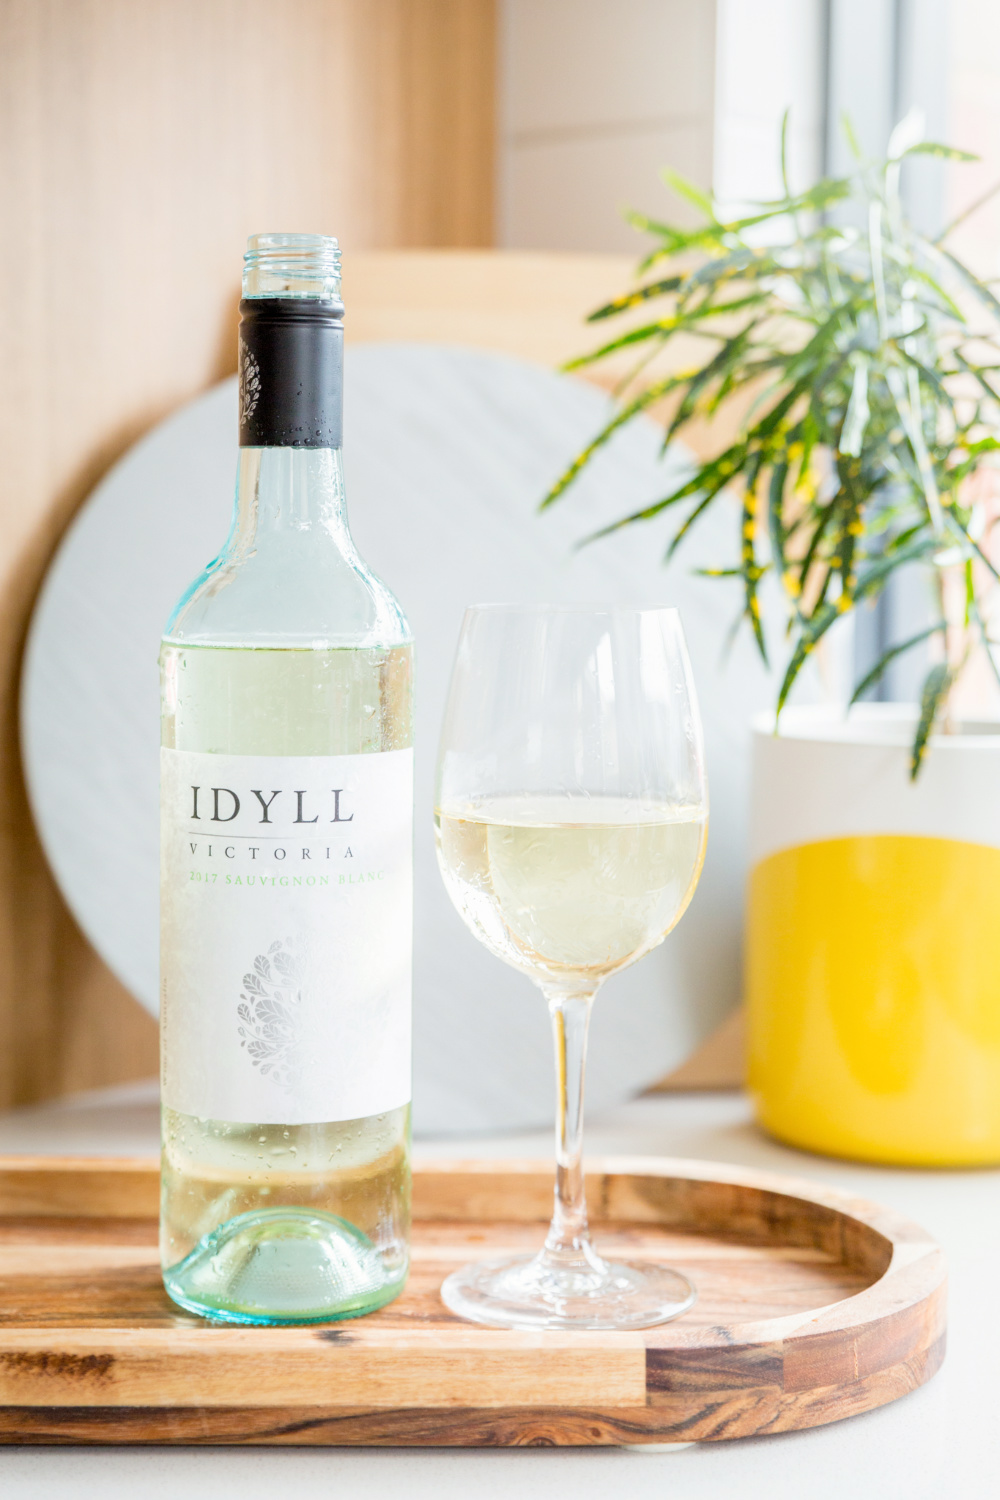 Idyll Wine Co Sauvignon Blanc